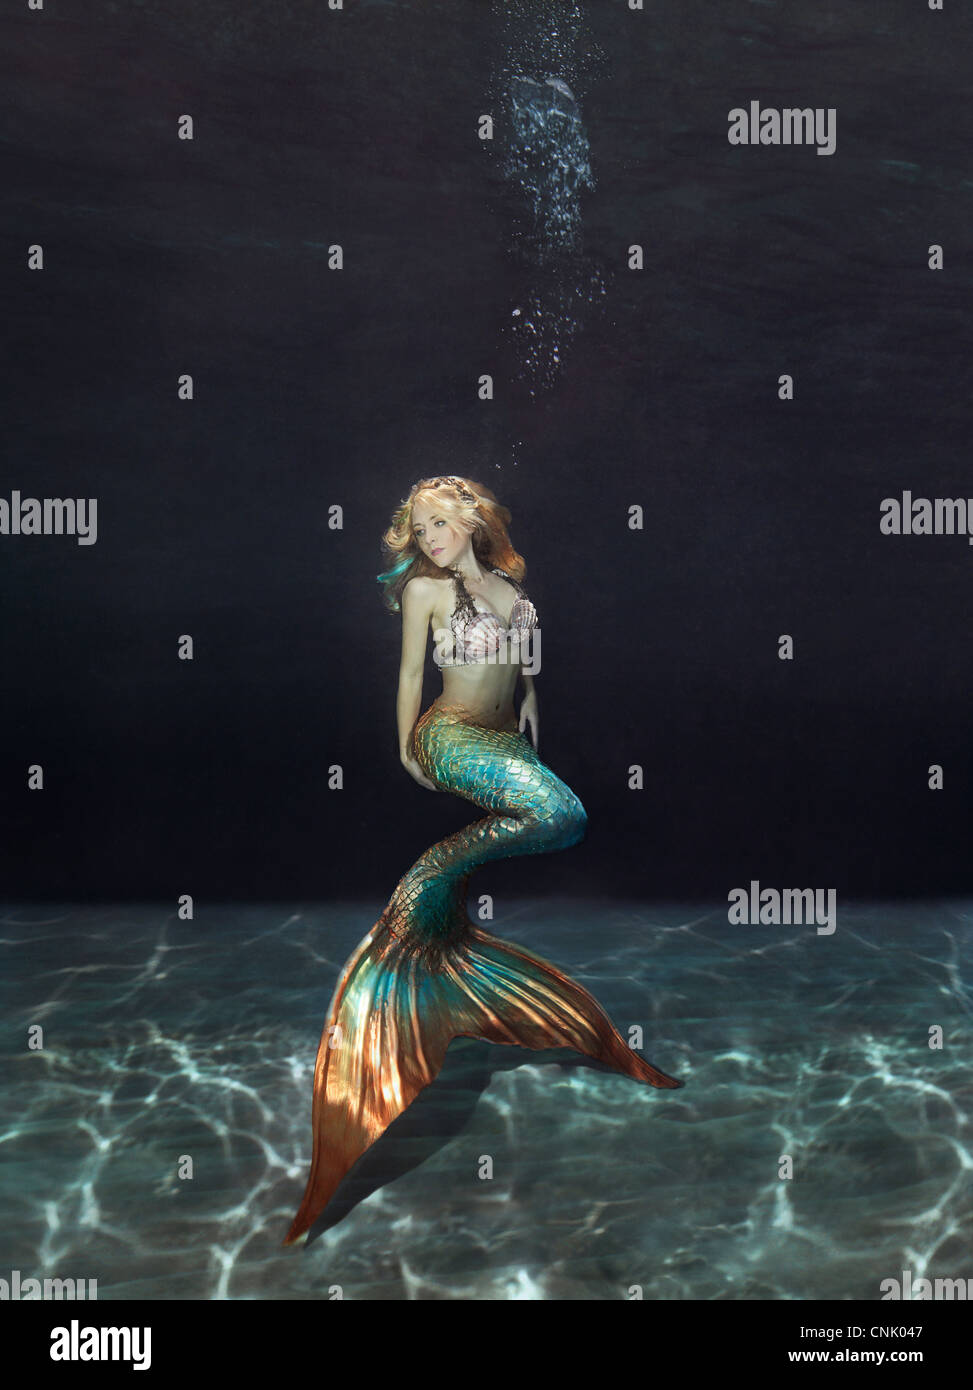 Mermaid underwater floating above the sandy bottom - Stock Image